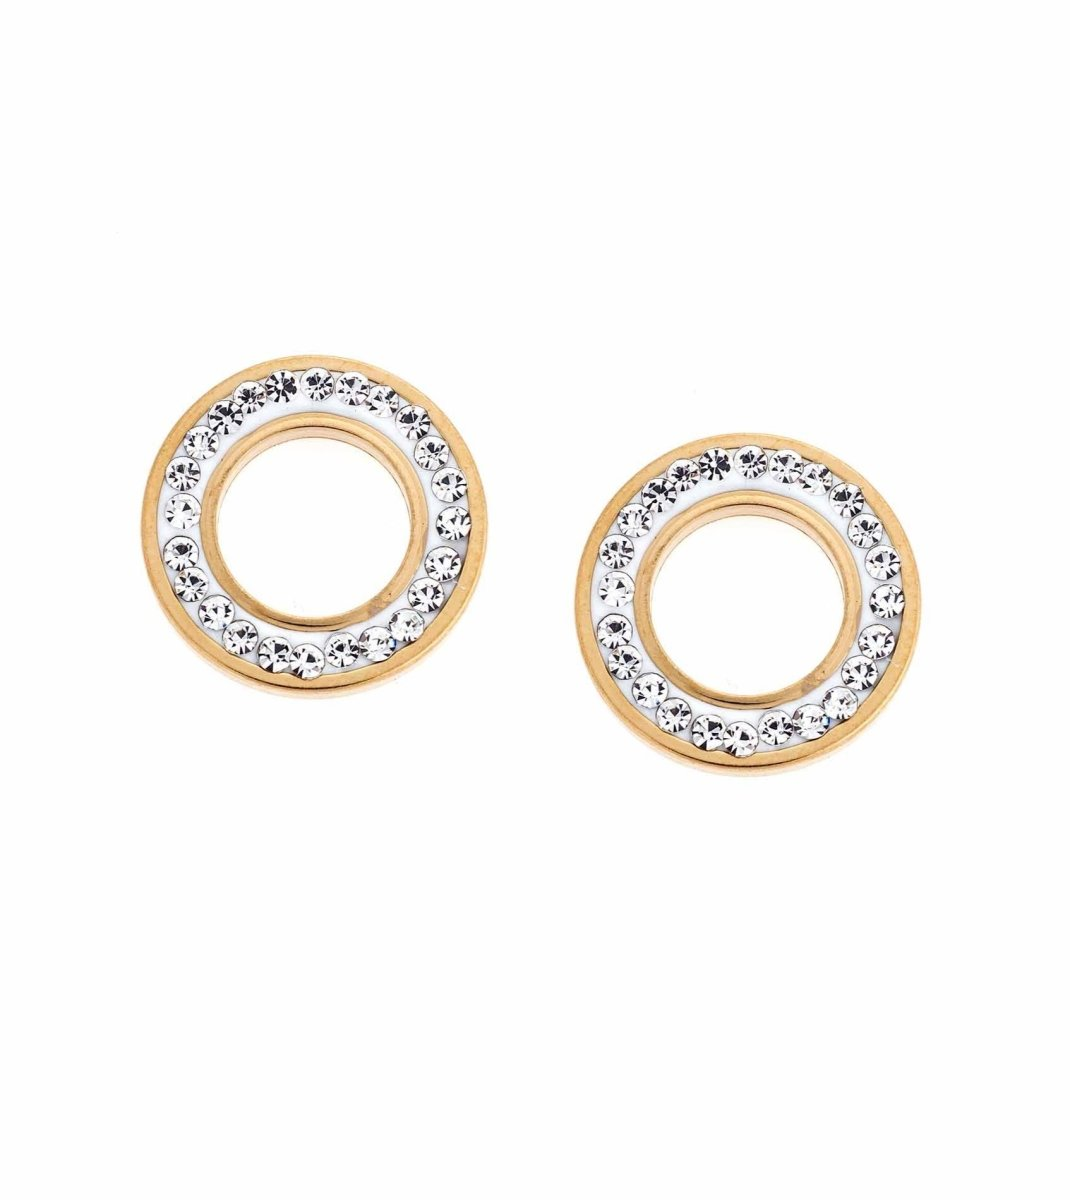 Puppis PUW96574G Gold Plated Earrings - Goldy Jewelry Store